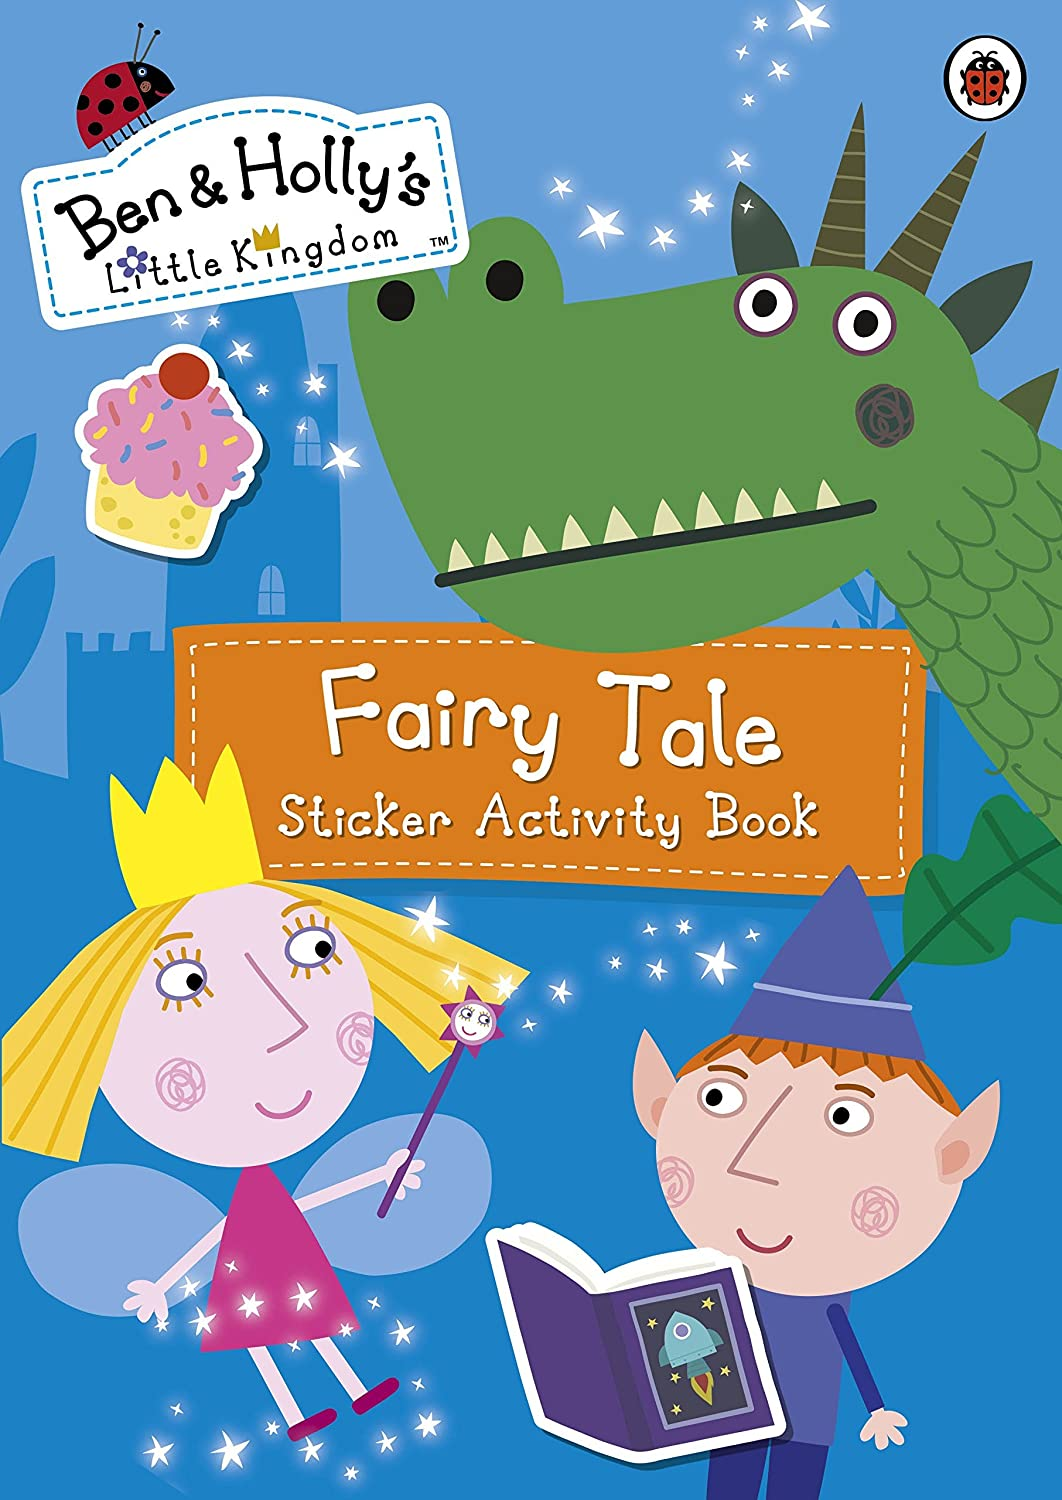 Royal Kingdom Fairy Tale Ben and Hollys Little Kingdom An Oversize Sticker Book for Little Hands Genuine Ben and Hollys